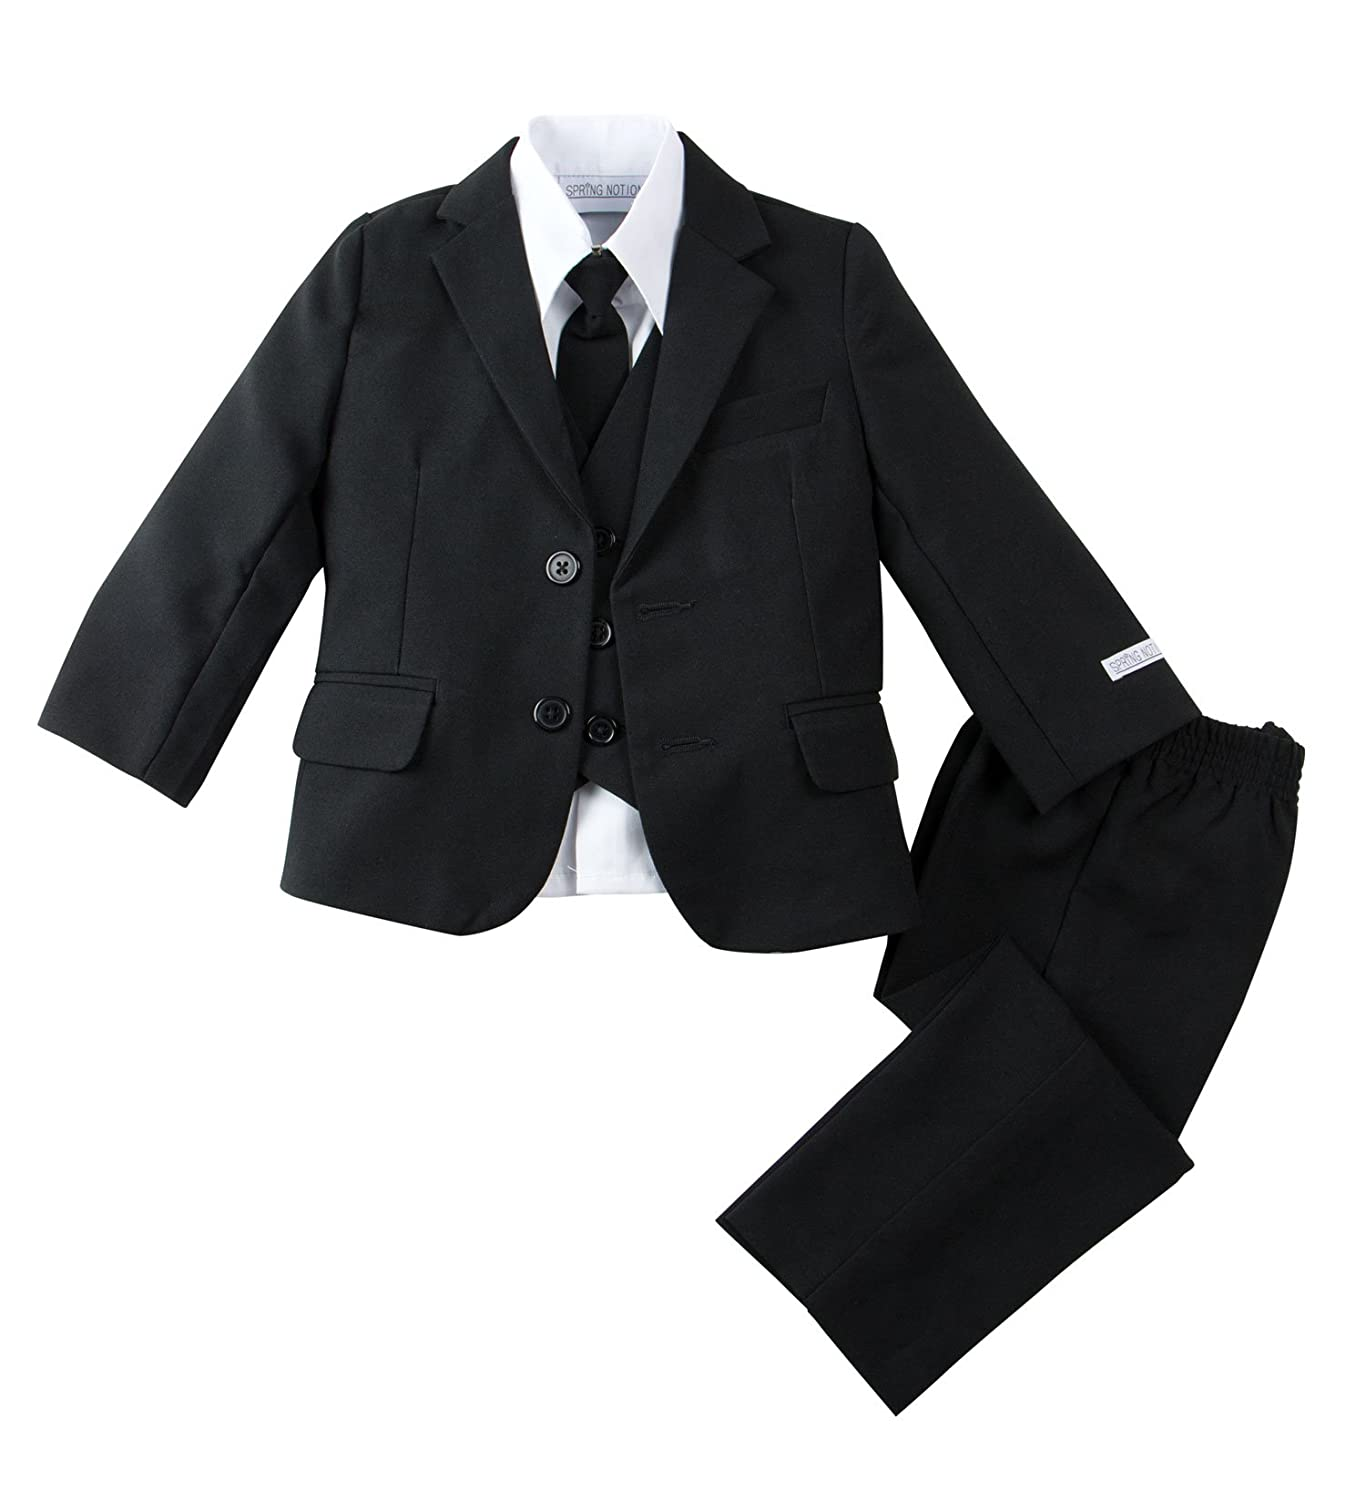 Spring Notion Baby Boys' Modern Fit Dress Suit Set ERF030-SNB-030